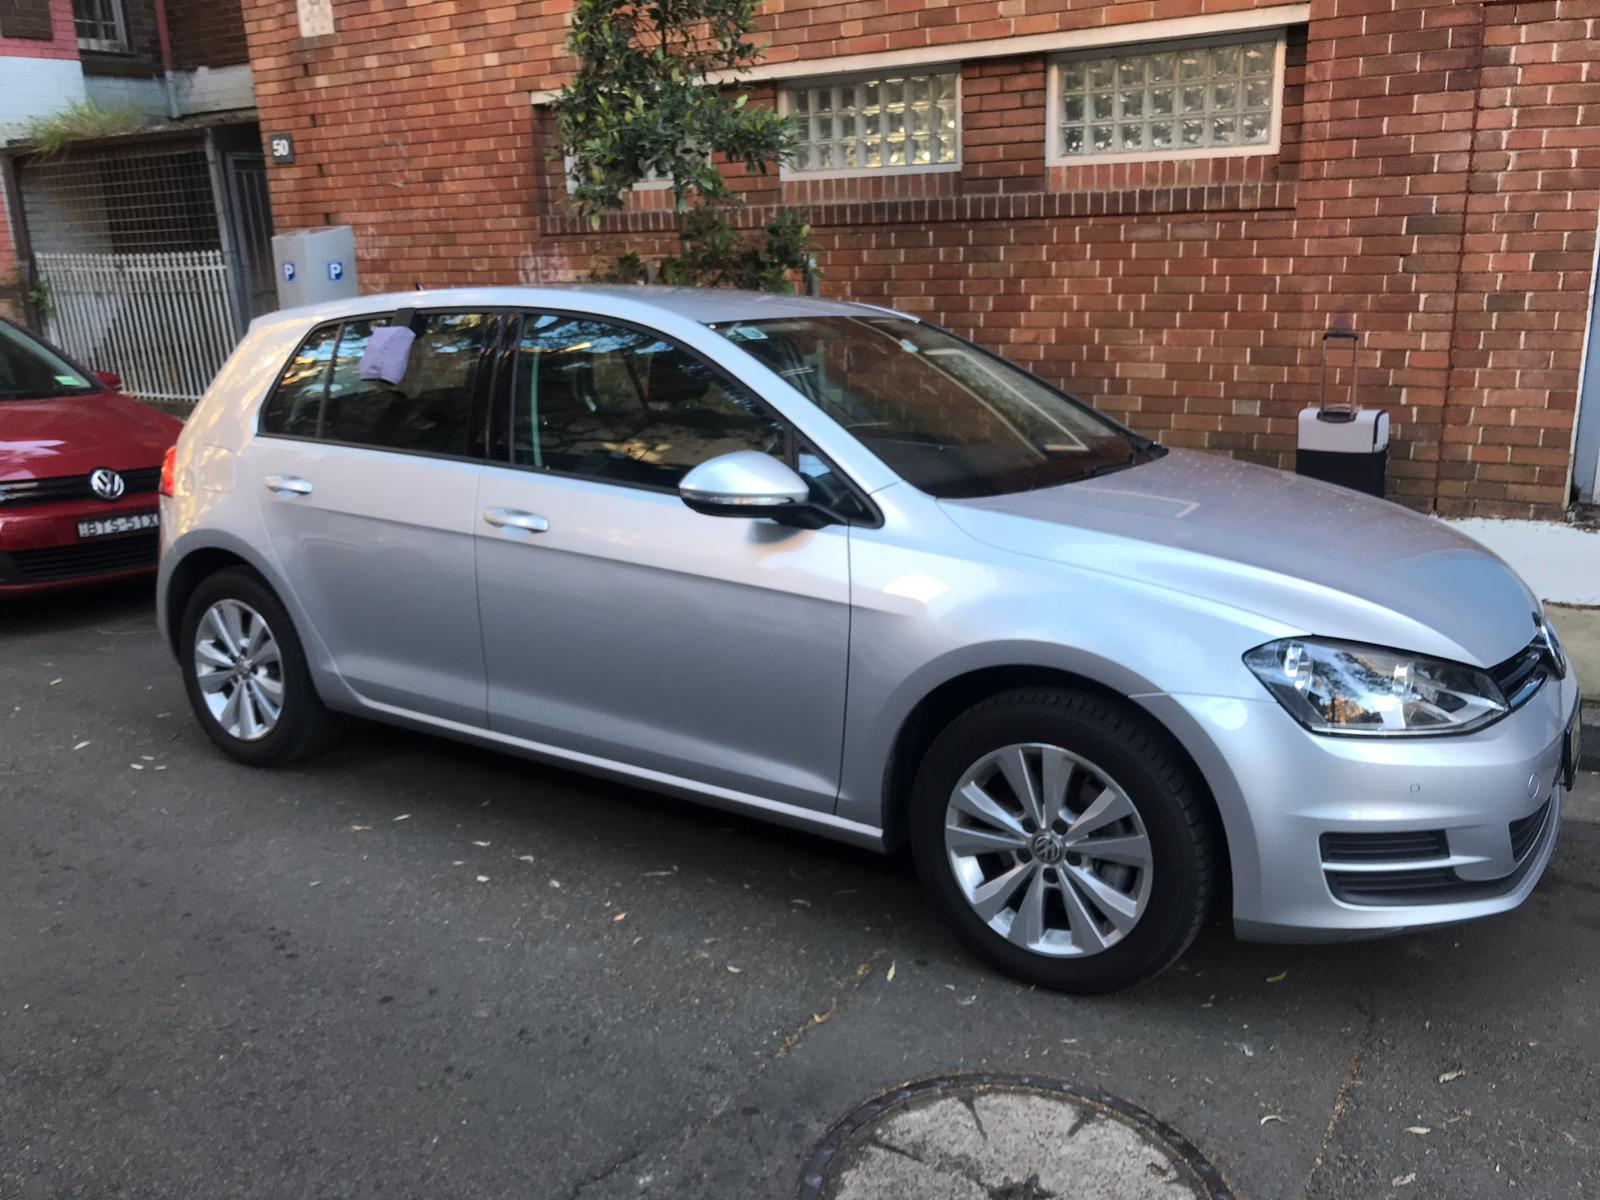 Picture of Carey's 2016 Volkswagen Golf 7 1.4 TSI Comfortline